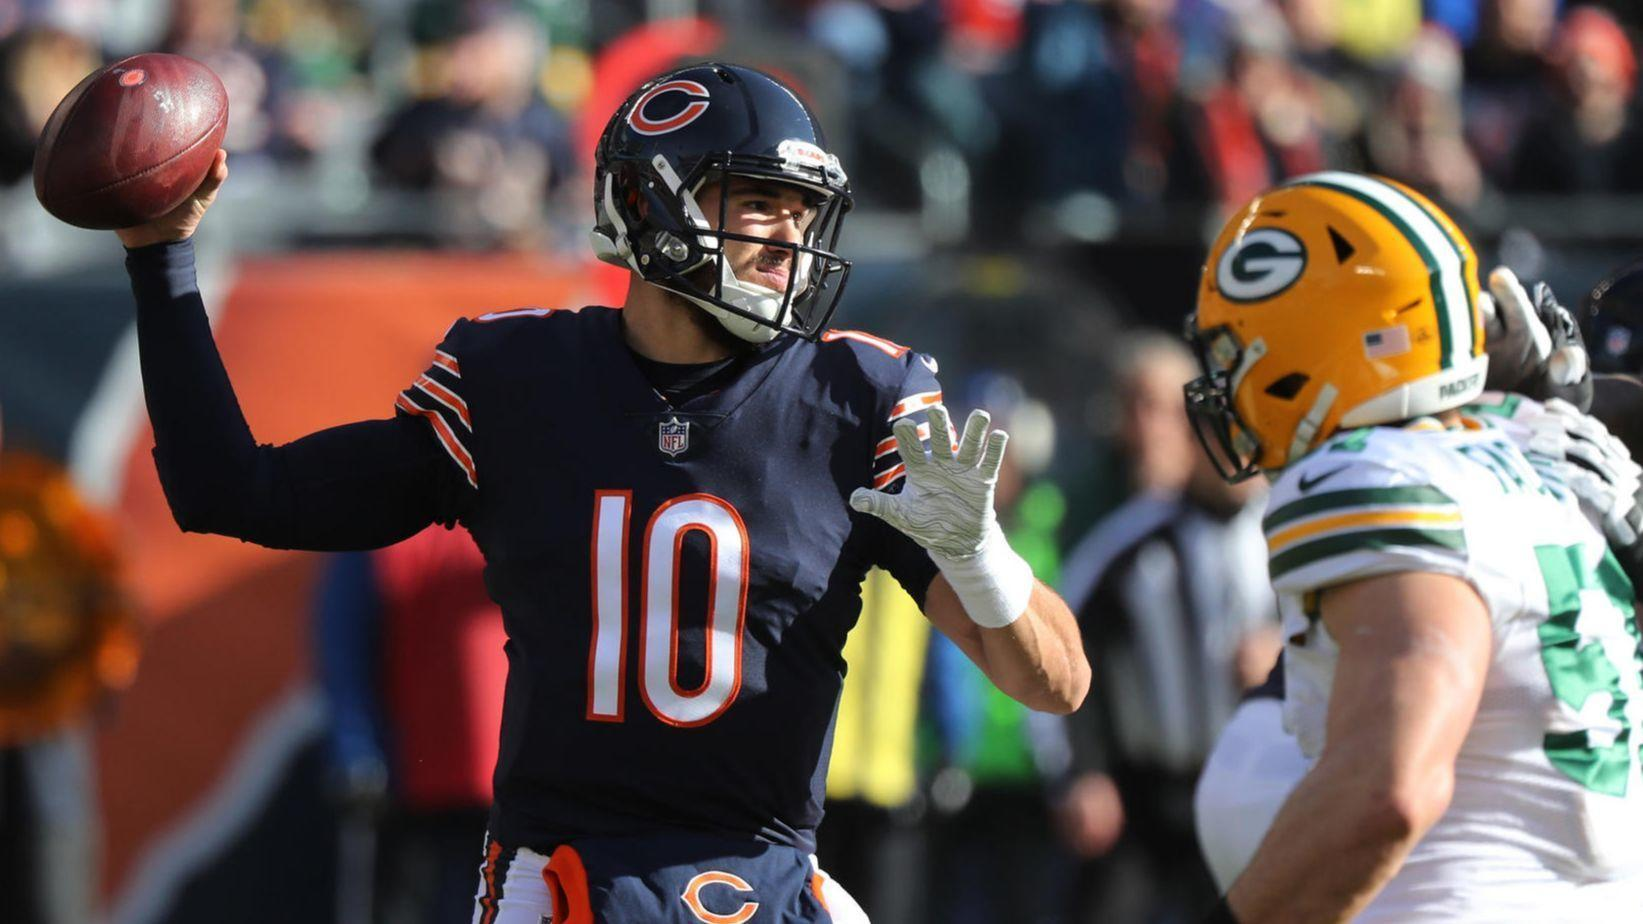 Ct-spt-bears-packers-observations-mitch-trubisky-leonard-floyd-20181218